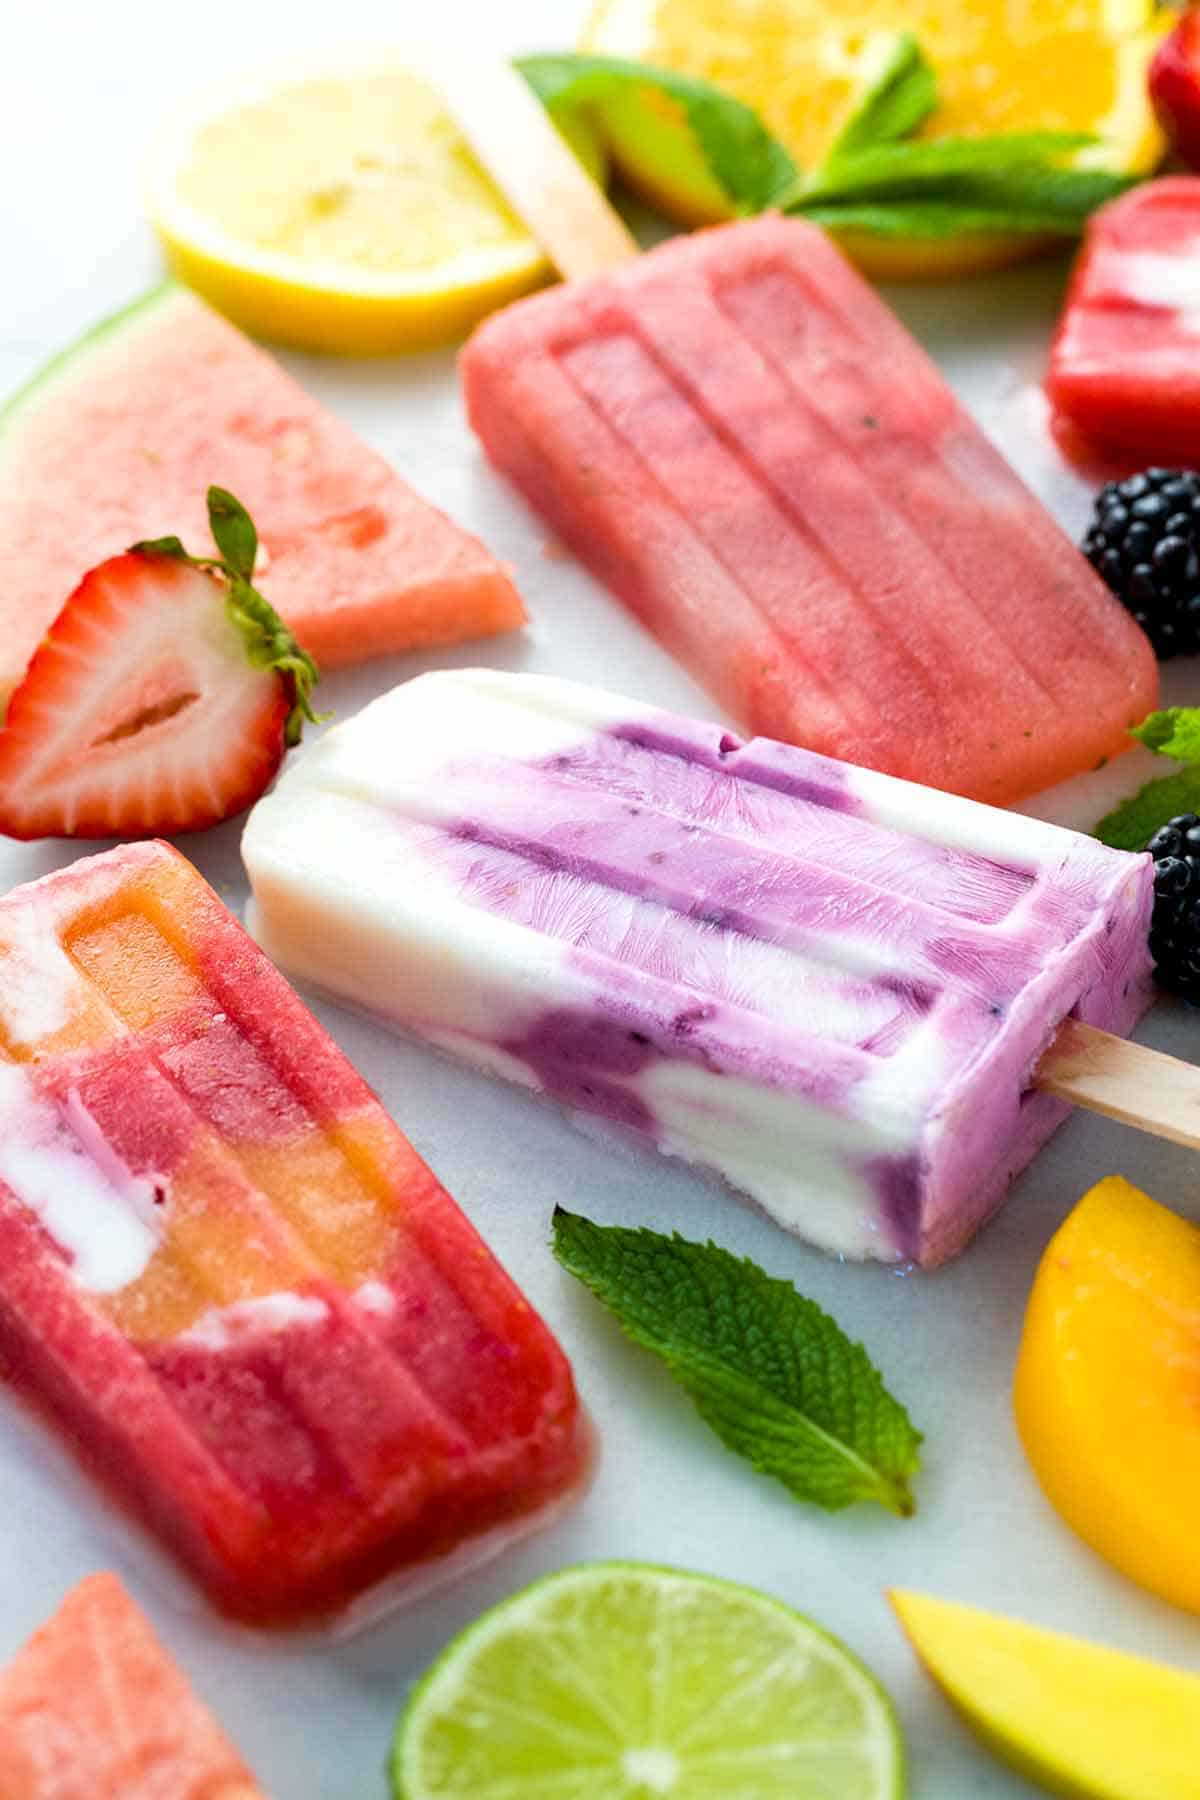 Brightly colored homemade fruit popsicles on table with fruit slices